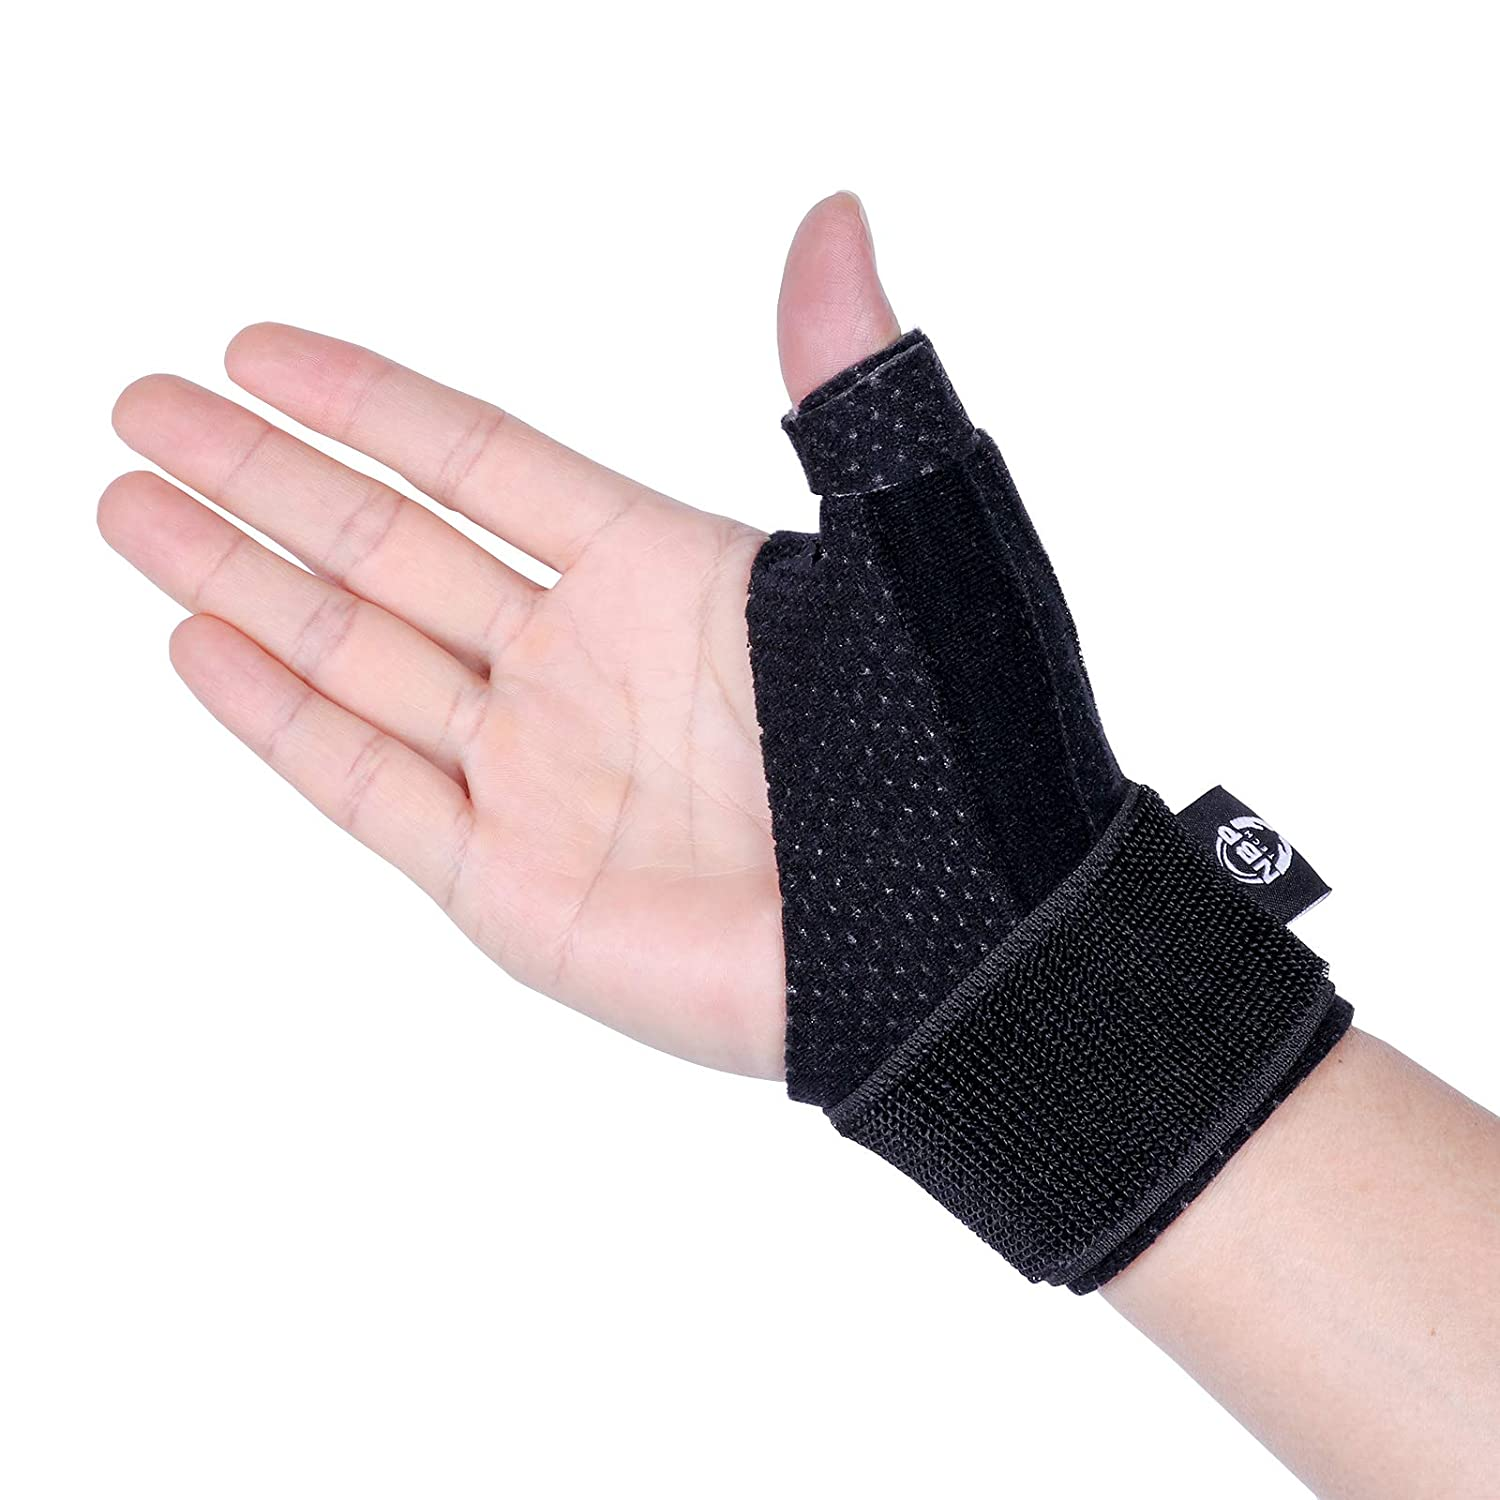 Reversible Thumb & Wrist Stabilizer Splint for BlackBerry Thumb, Trigger Finger, Pain Relief, Arthritis, Tendonitis, Sprained and Carpal Tunnel Supporting, Lightweight and Breathable